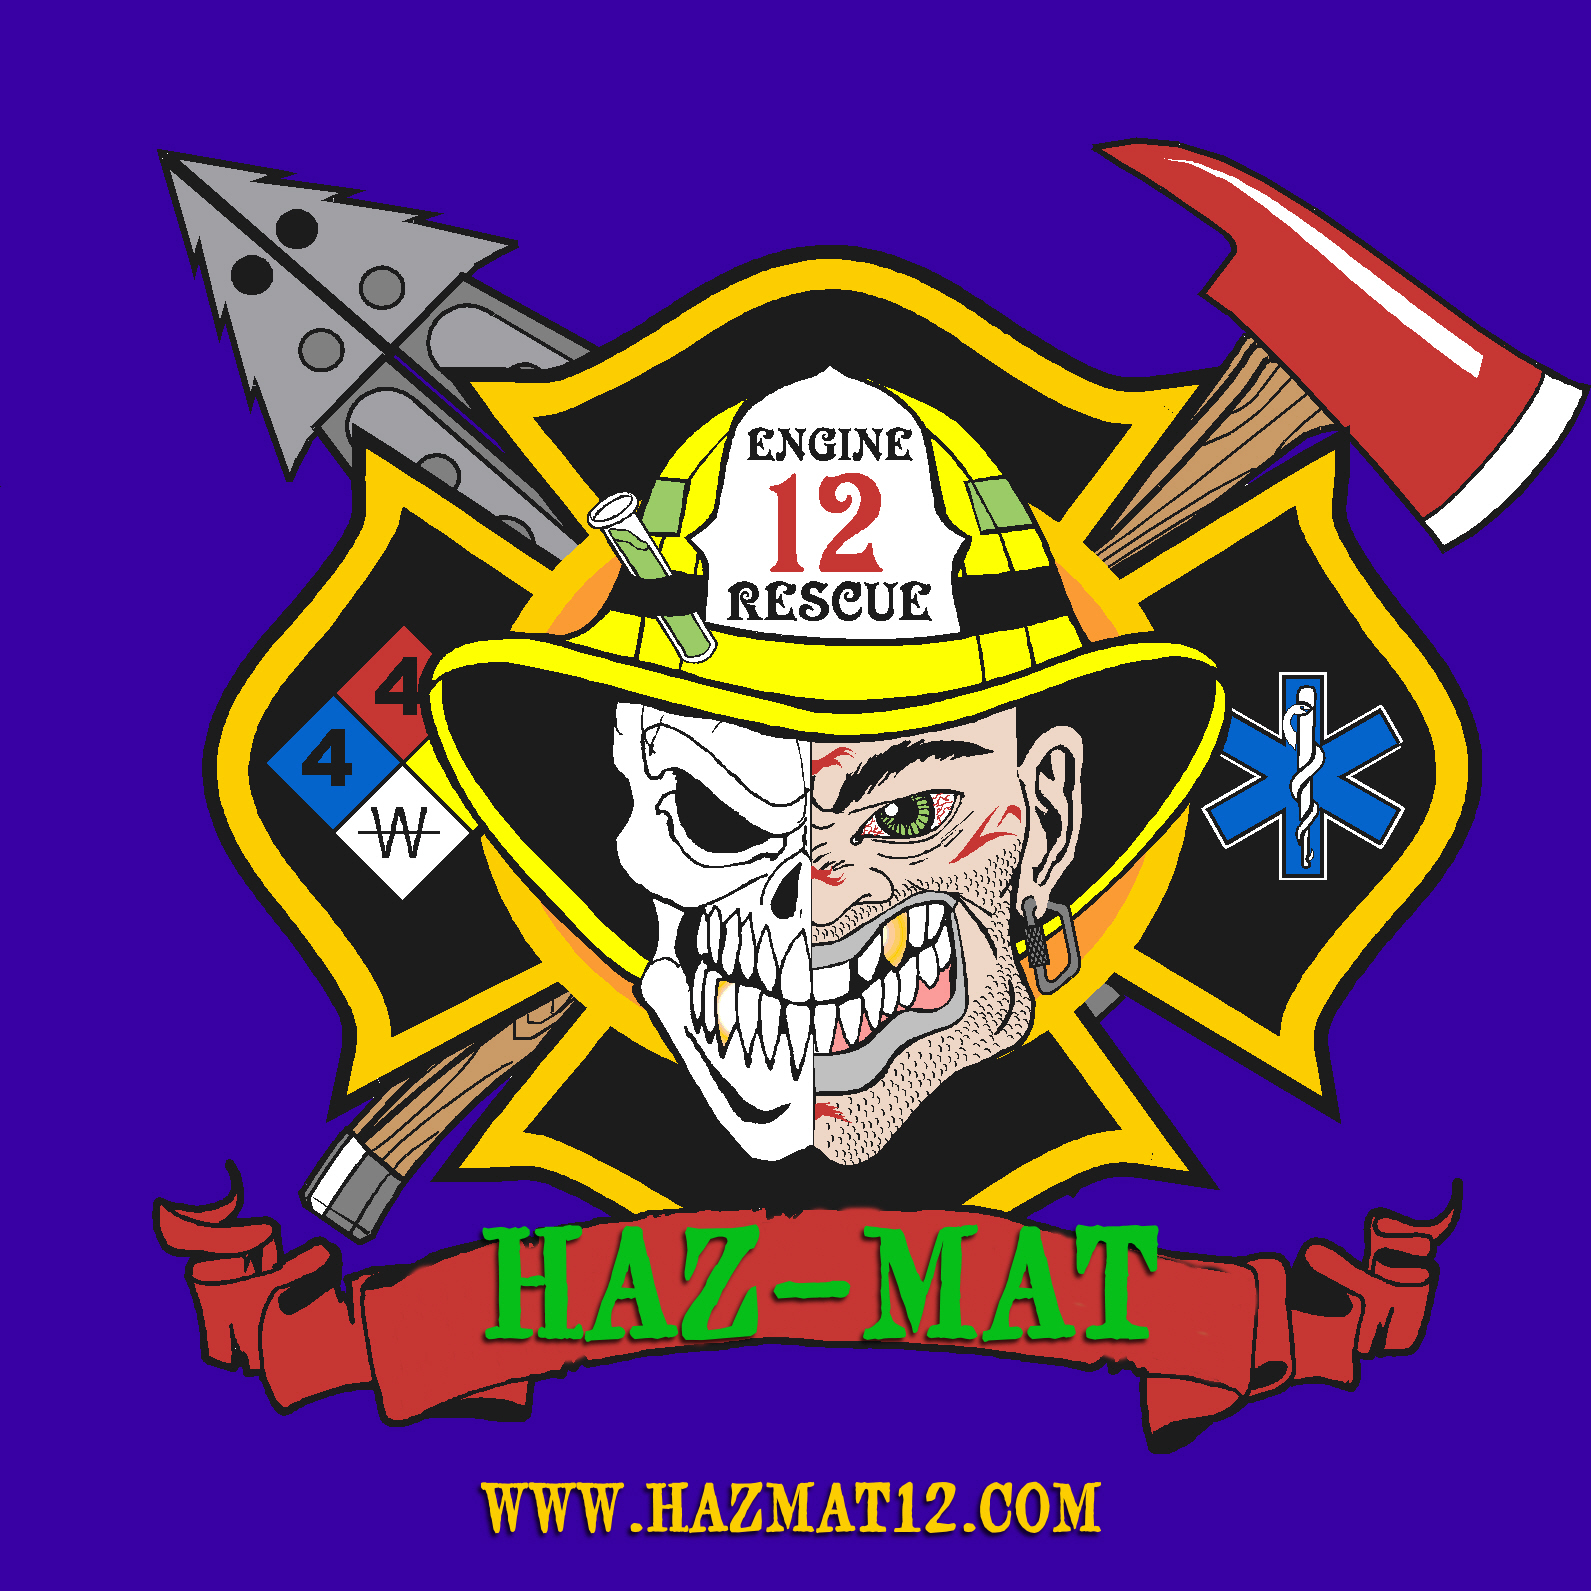 Free Hazmat Cliparts, Download Free Clip Art, Free Clip Art on.